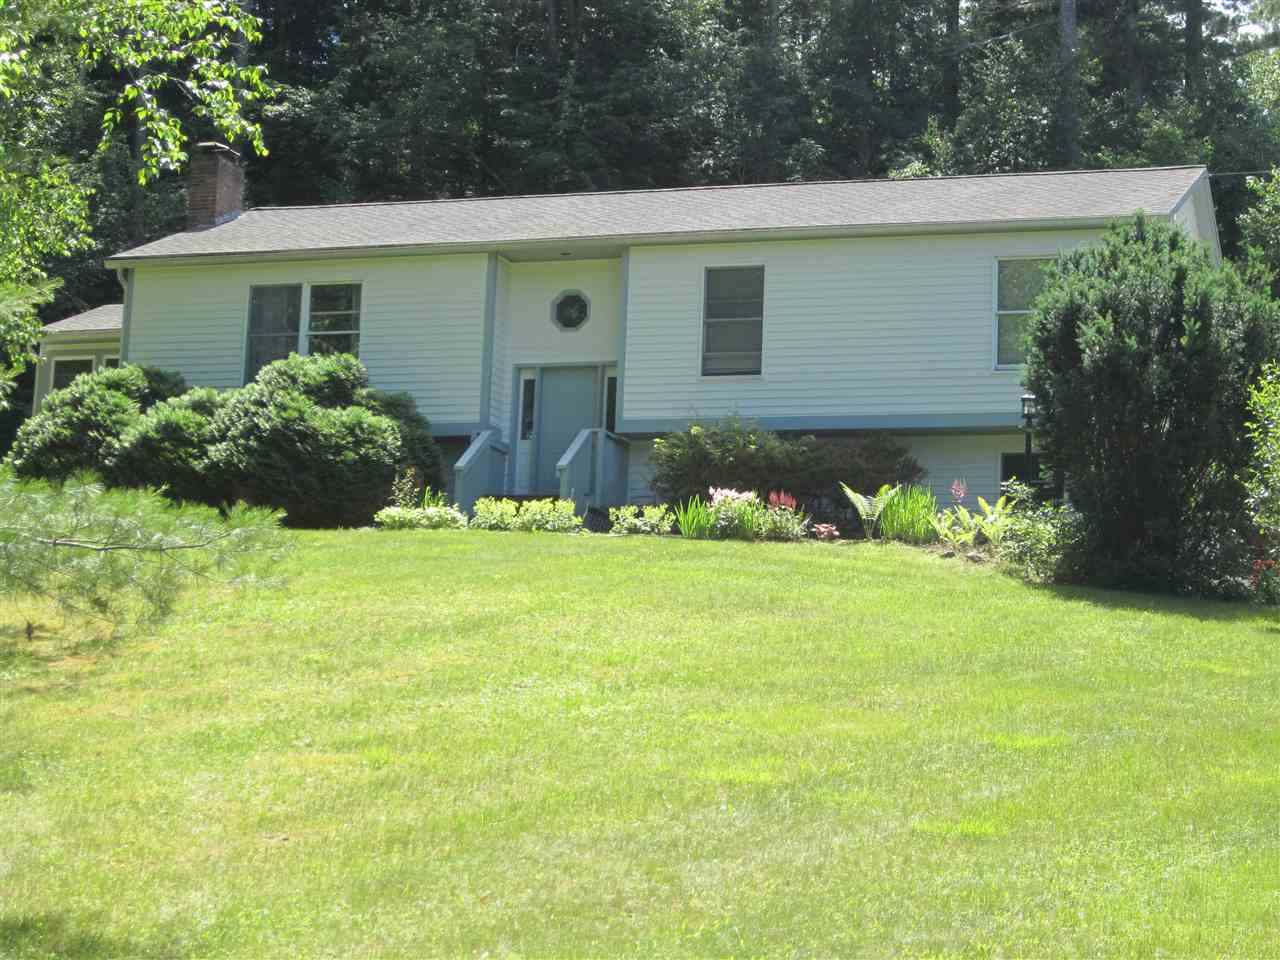 MLS 4762486: 30 Highland Circle, Swanzey NH